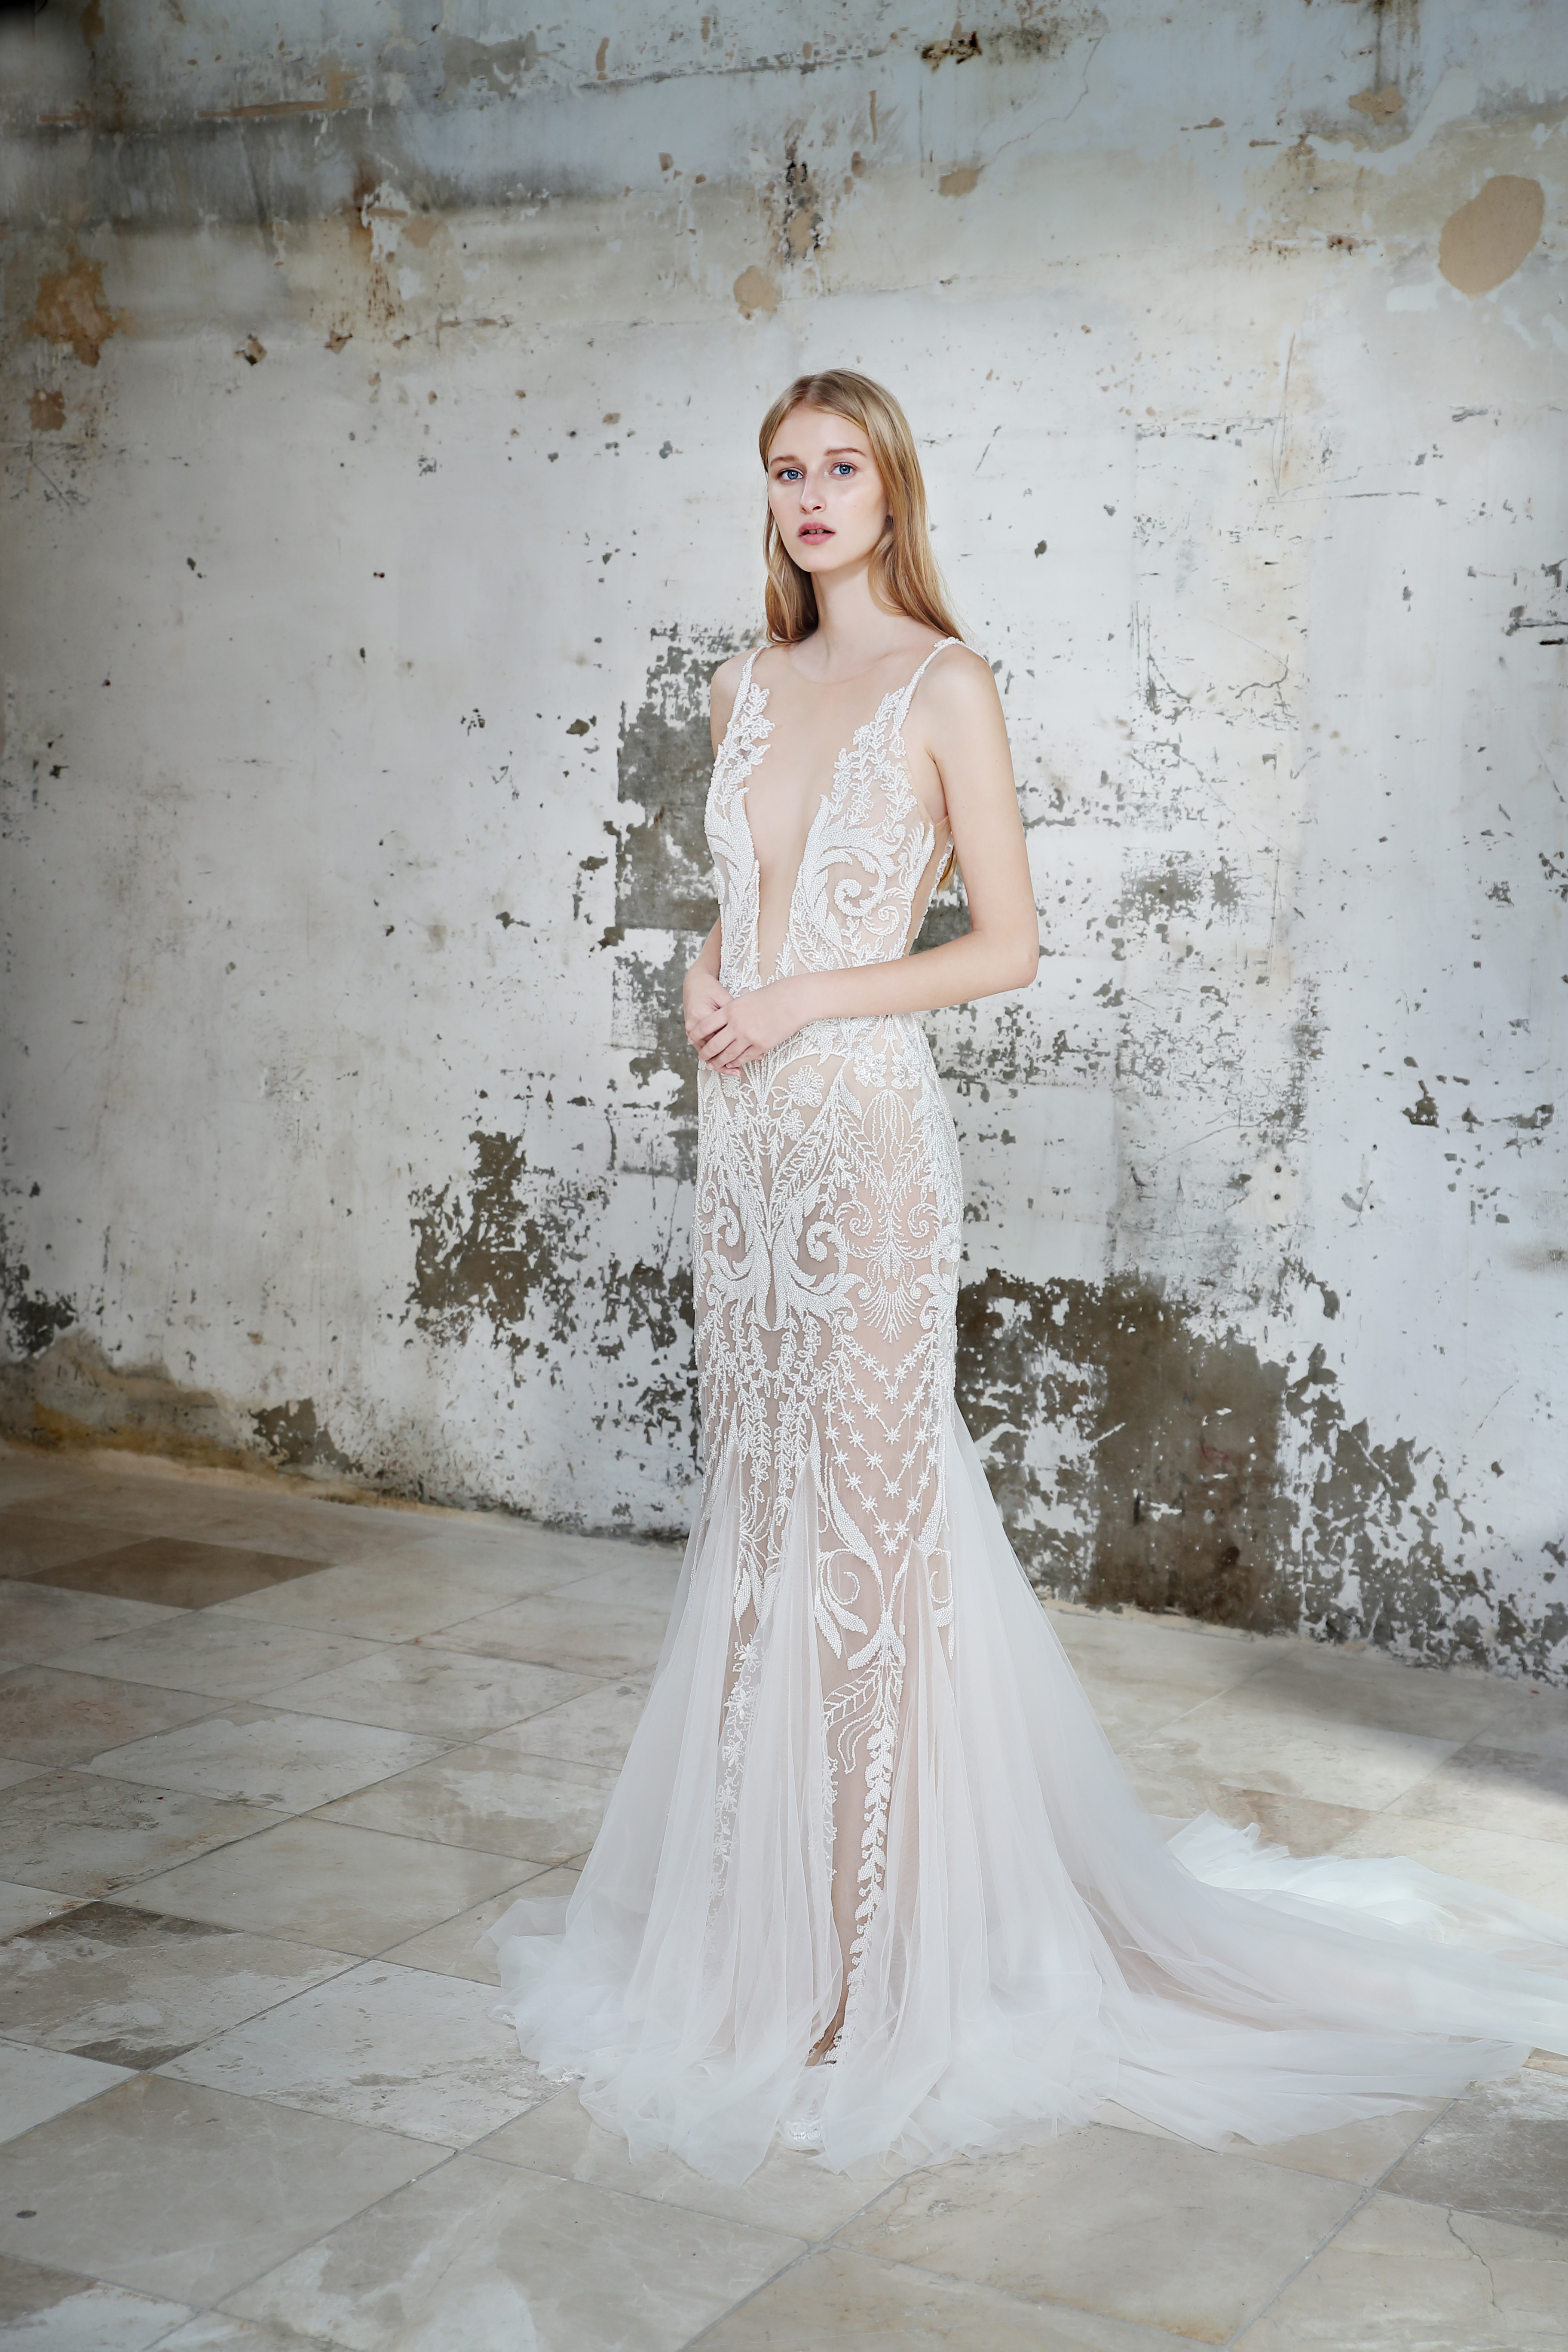 Gala by Galia Lahav sheer wedding dress fall 2019